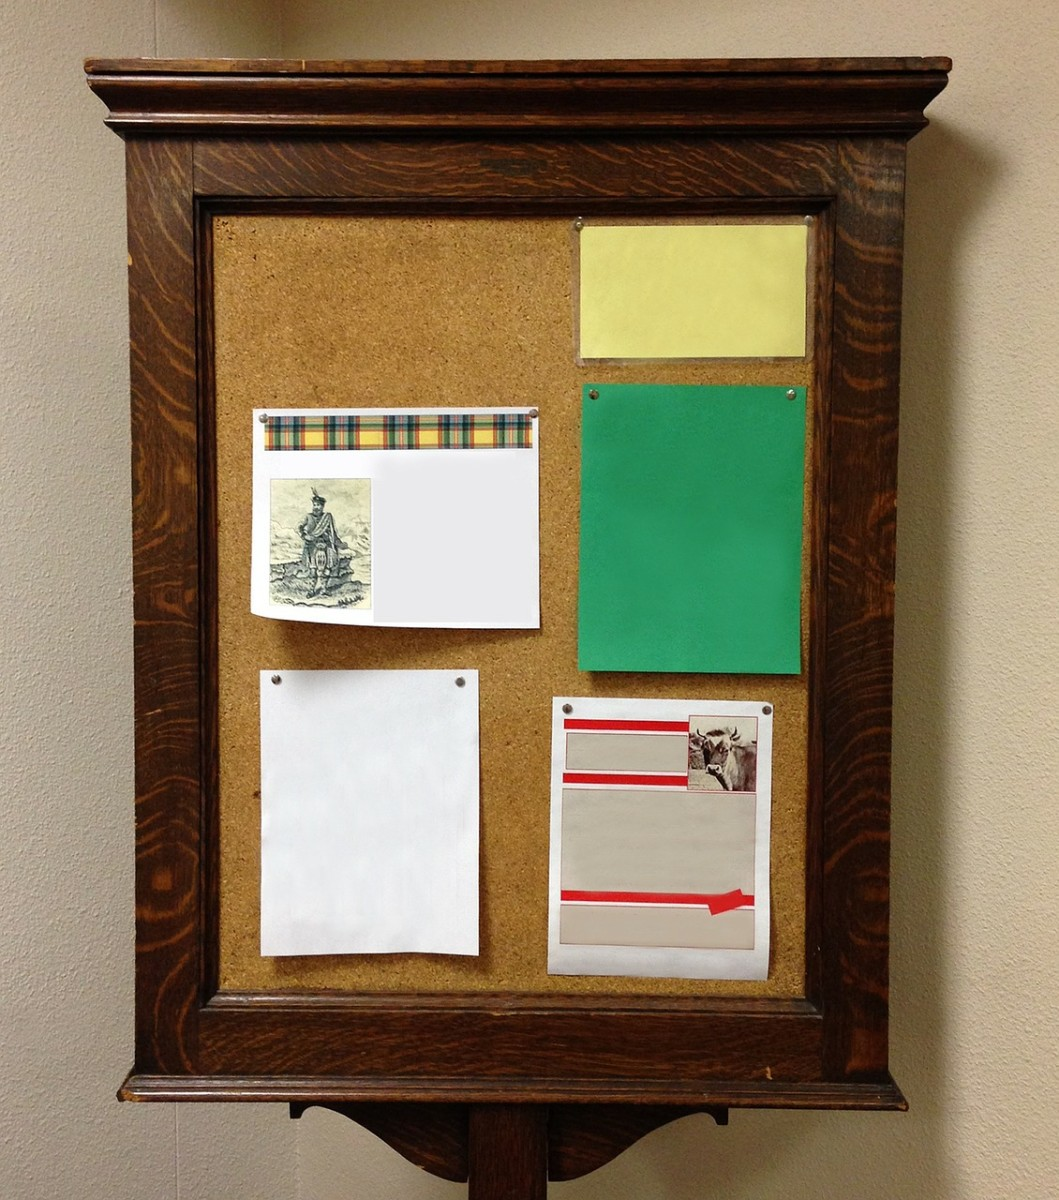 Decluttering your pin board and sorting through out-dated messages and clippings is an easy and satisfying organizing project you can finish in 20 minutes.